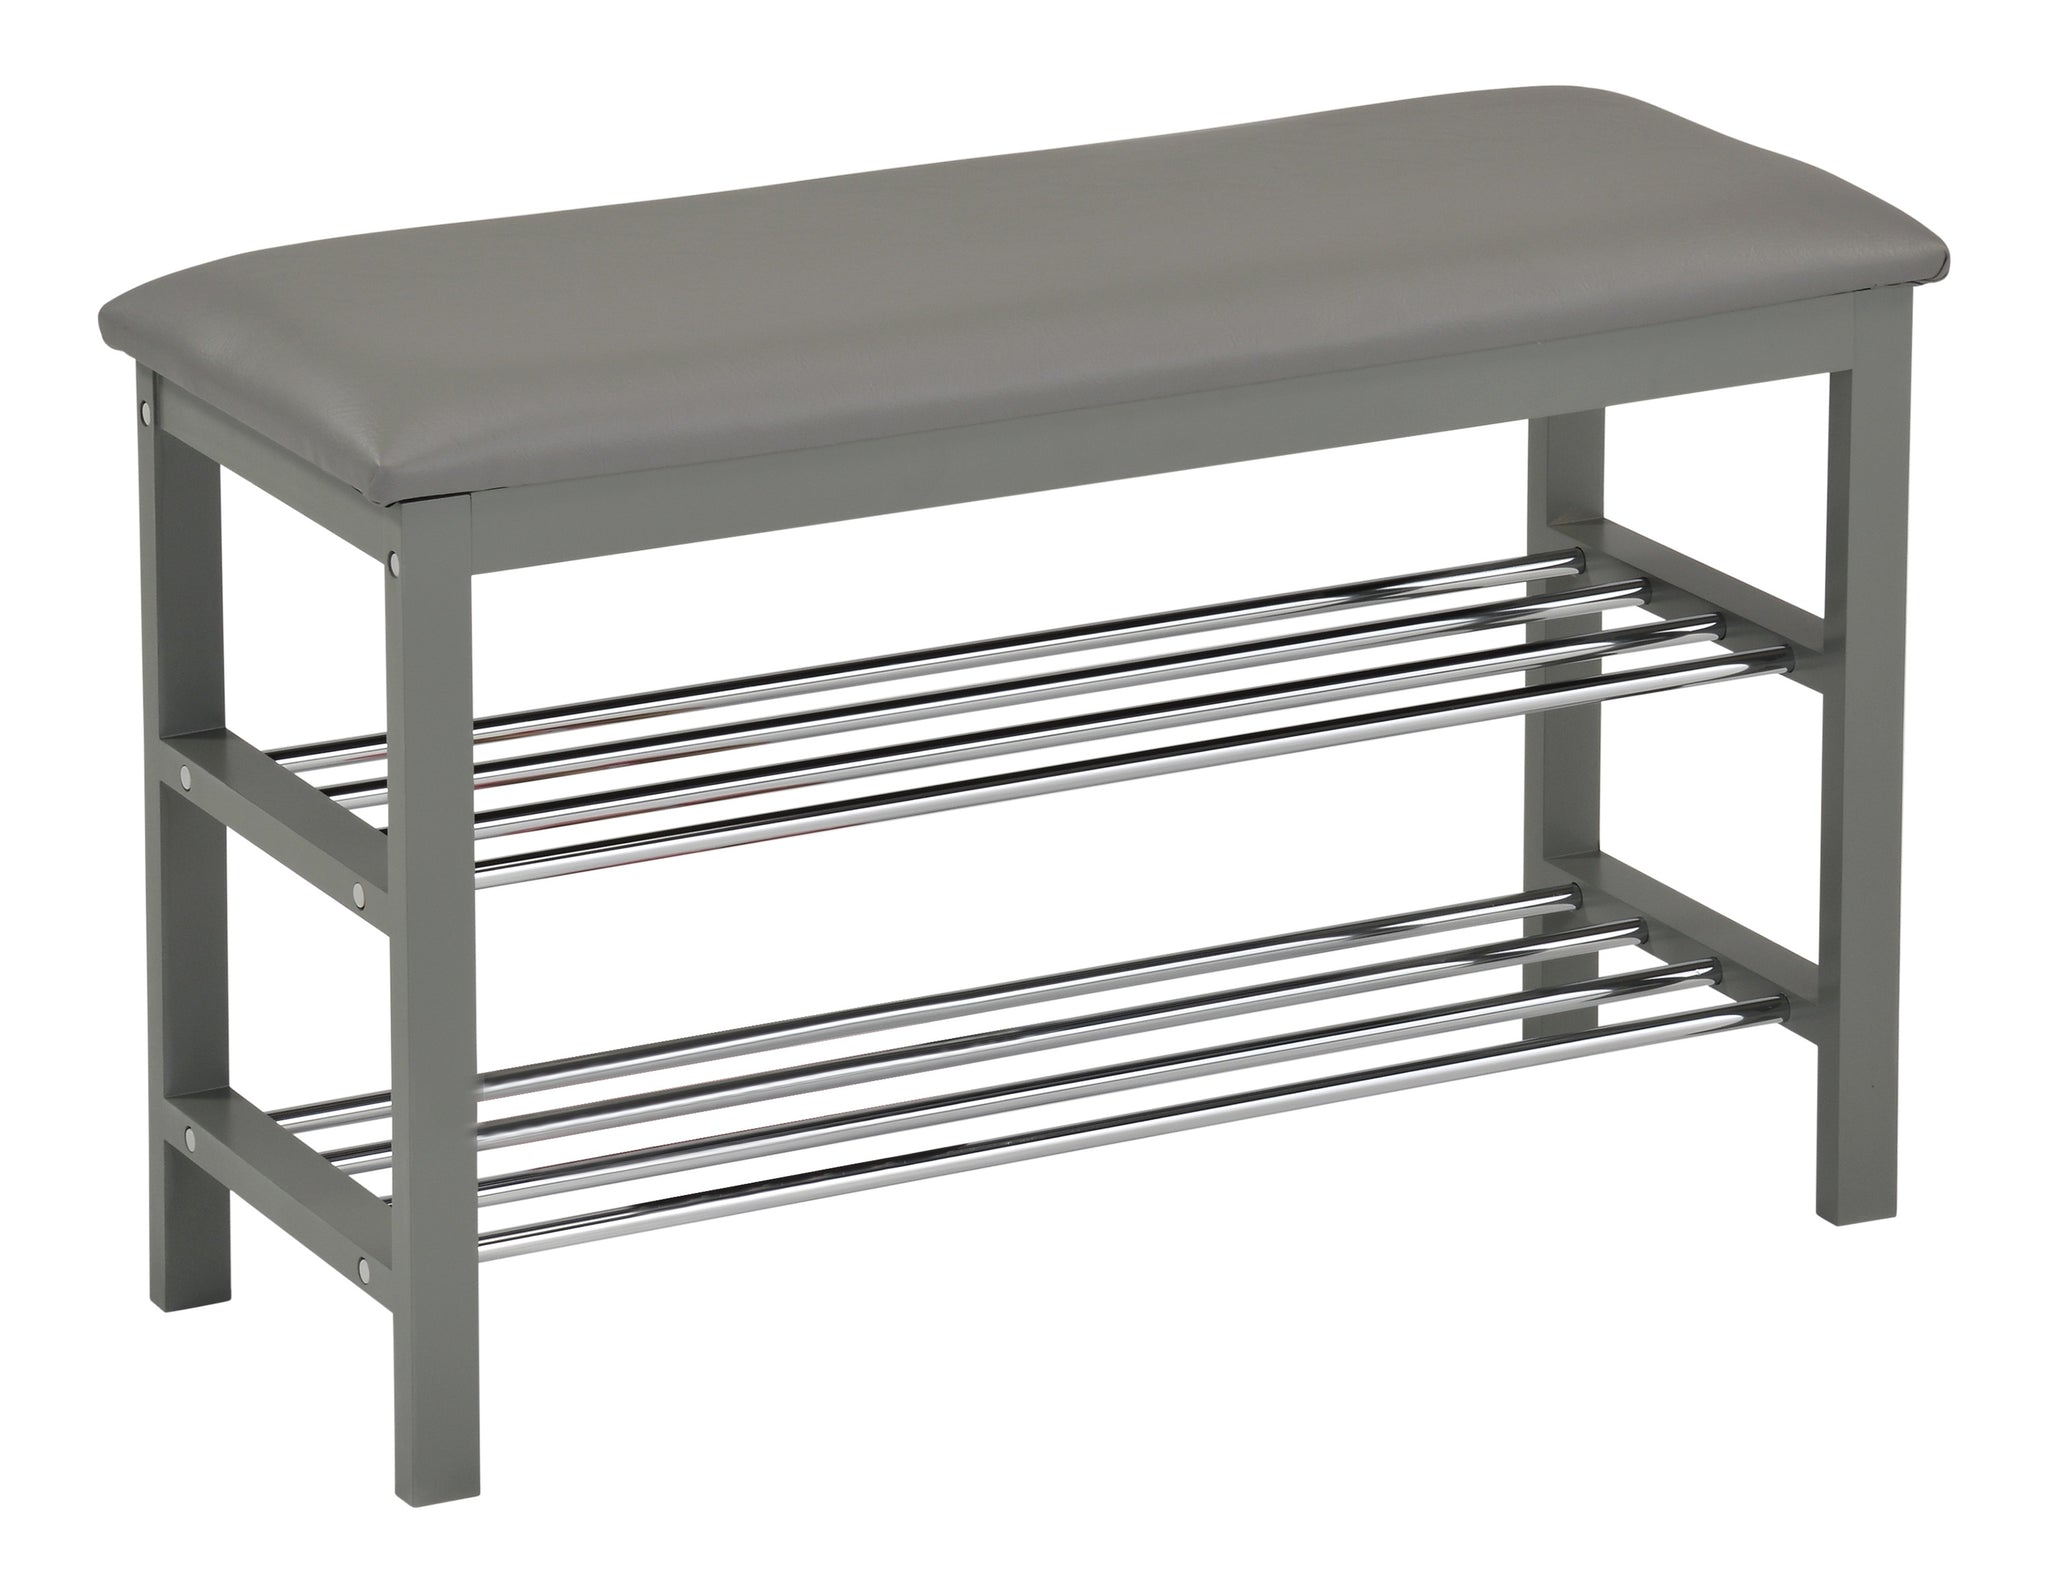 rack product steel hospital metal parry stainless storage storgae shelf